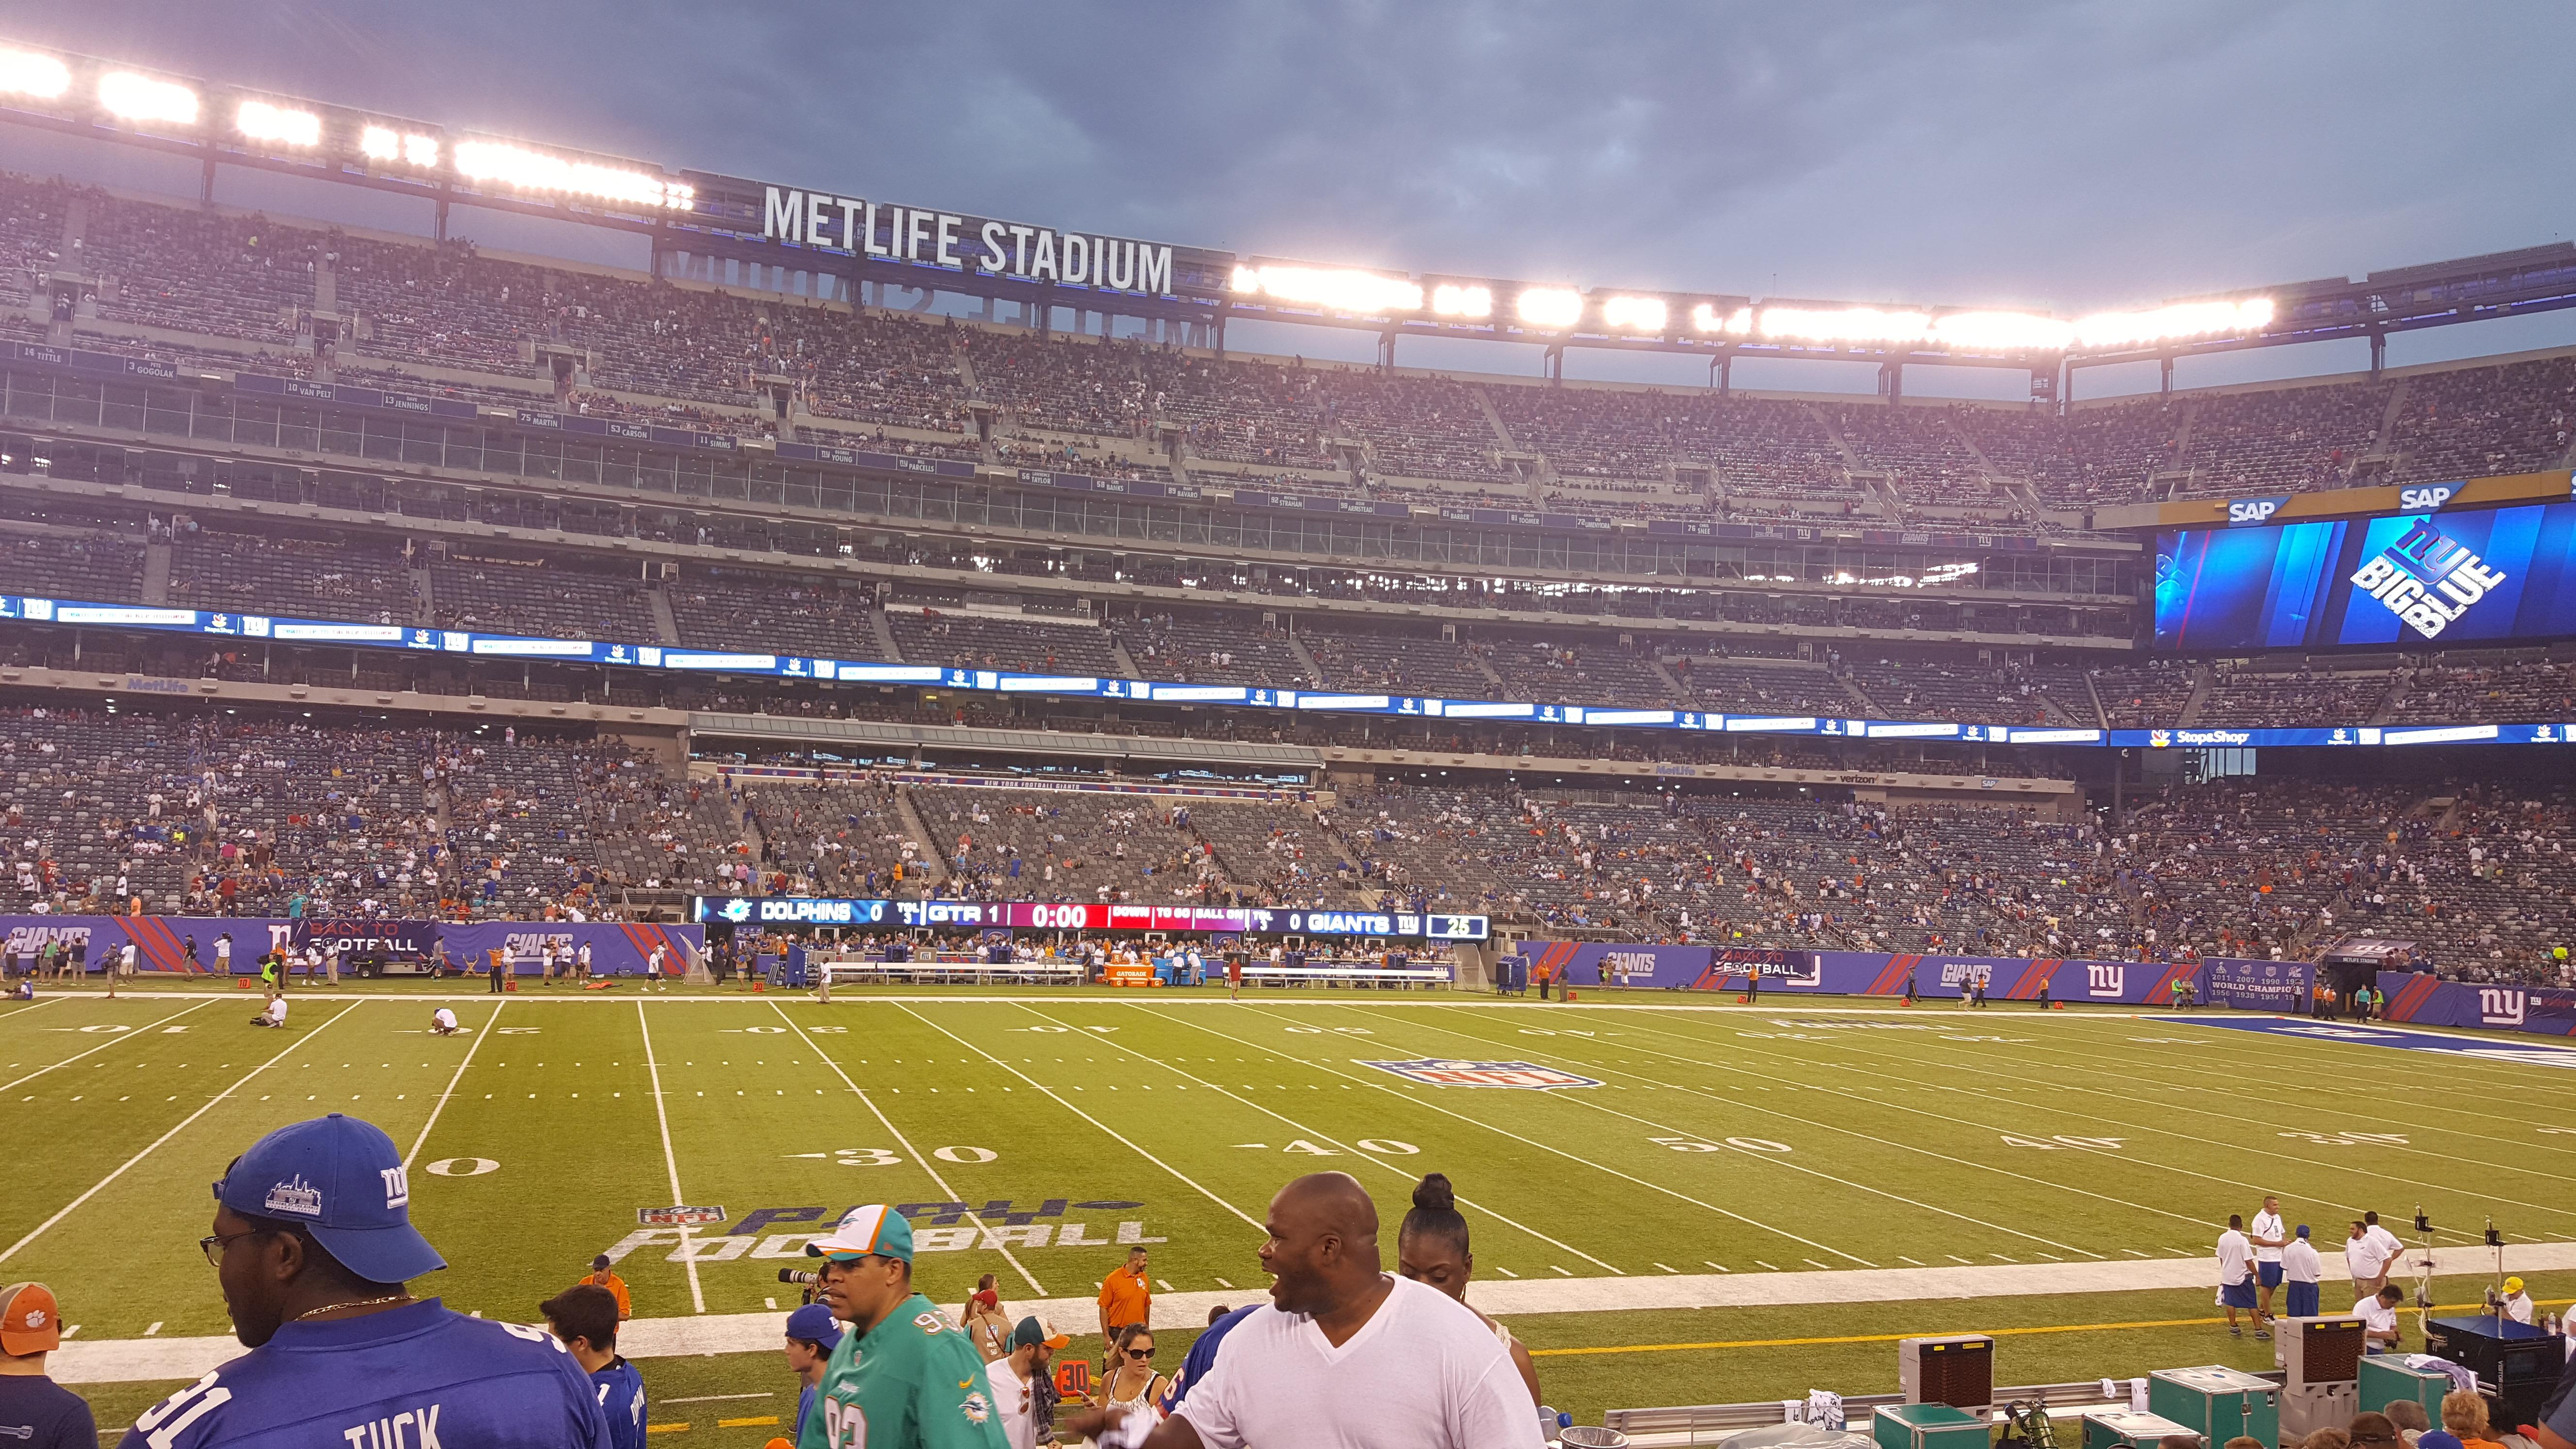 MetLife Stadium Section 142 Row 16 Seat 1